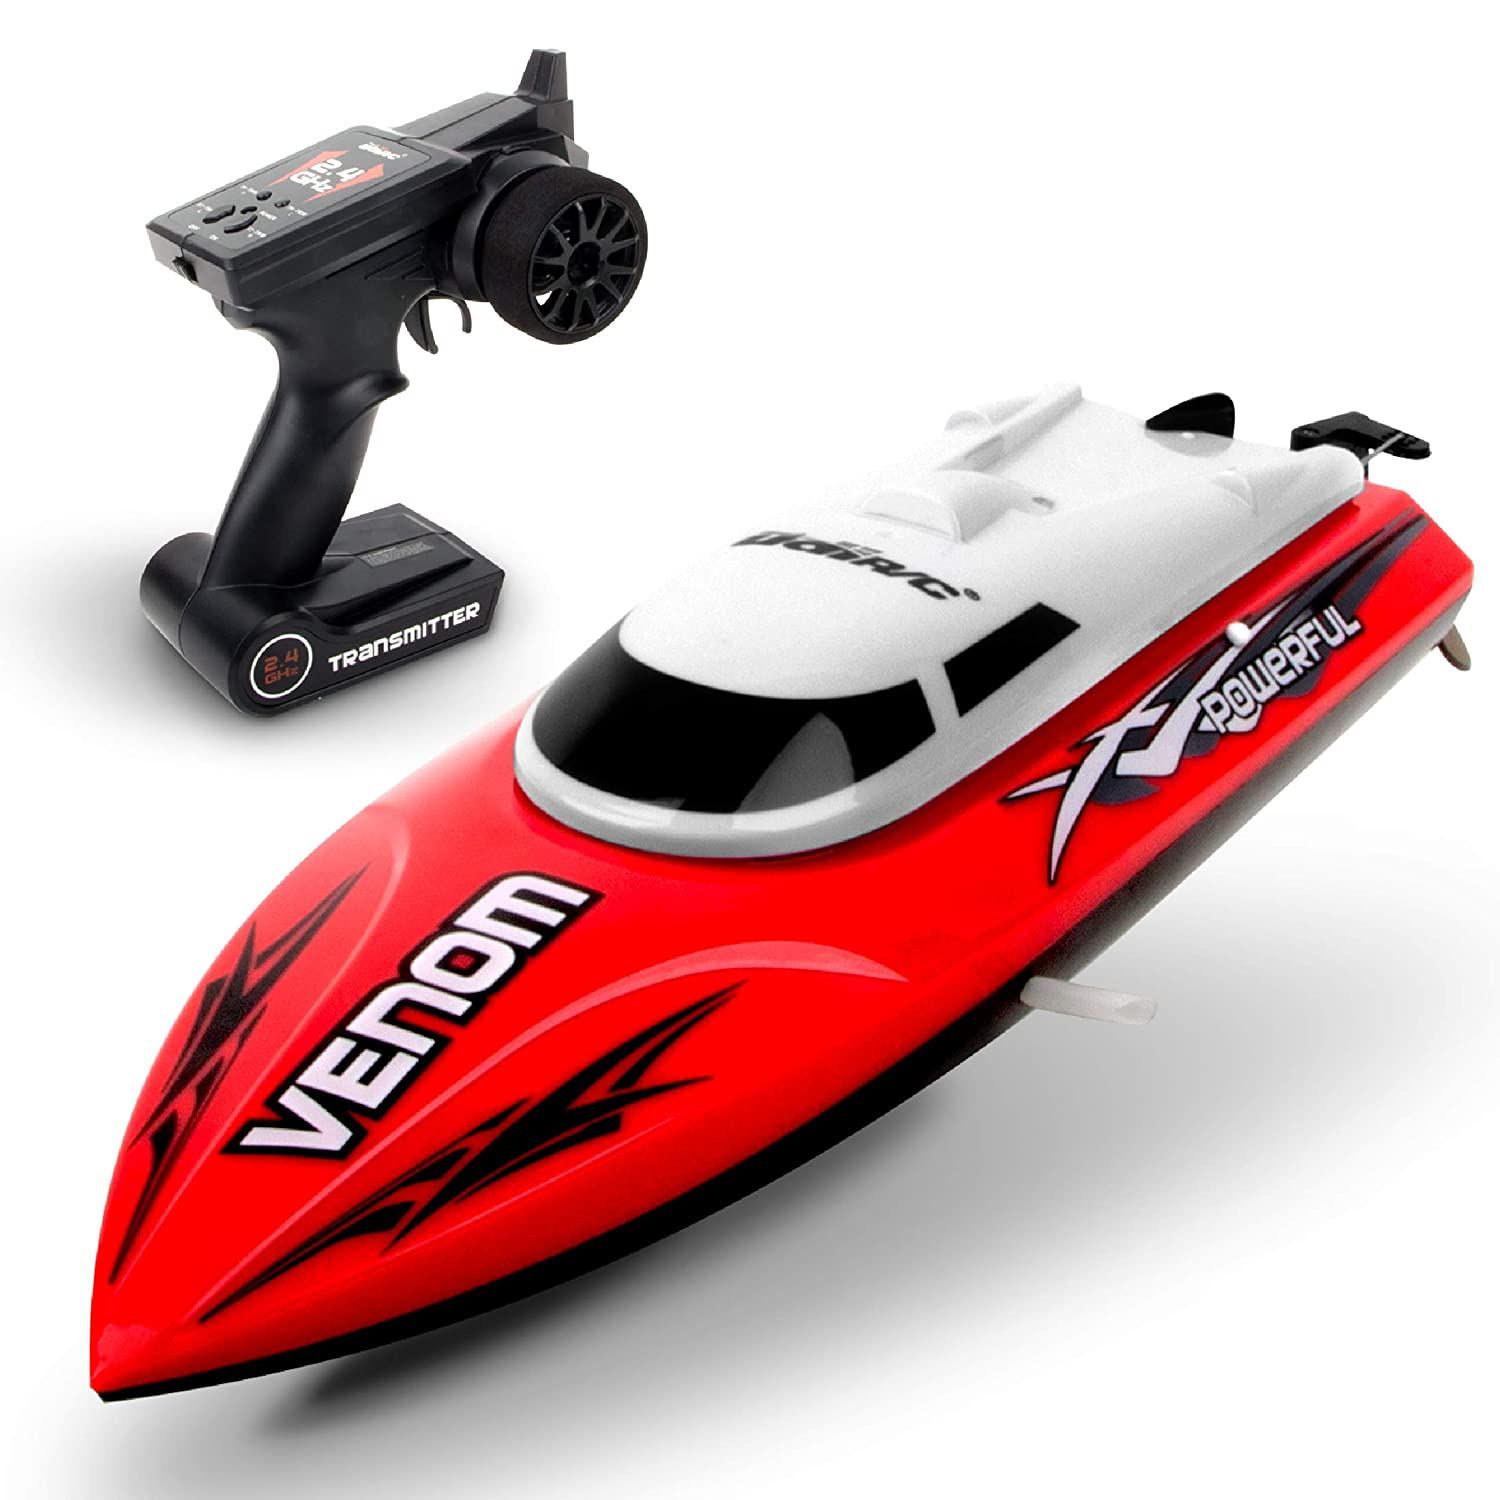 Top 8 Best RC Boats Reviews in 2021 You Should Consider Buying 4